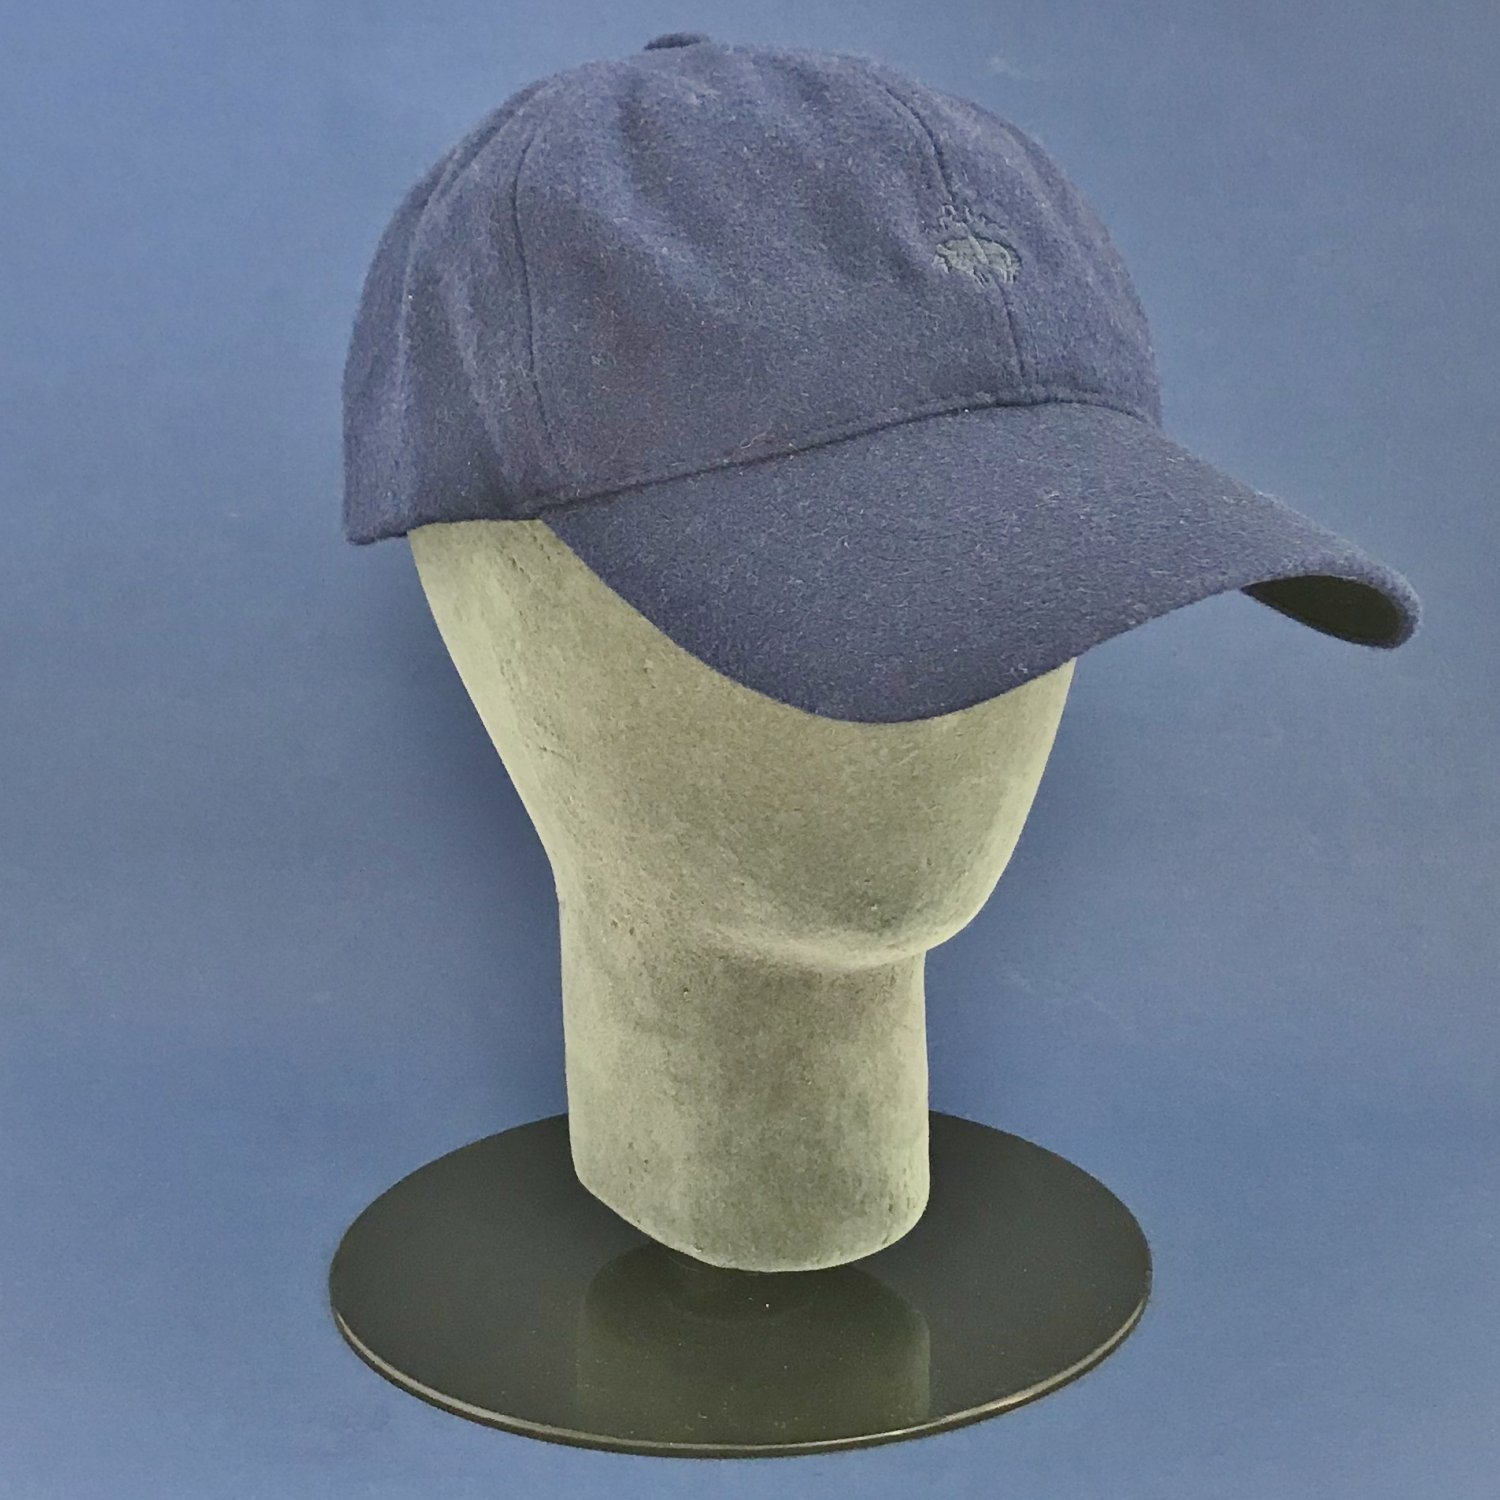 NWT Brooks Brothers Royal Blue Wool Blend Baseball Cap Hat - S/M